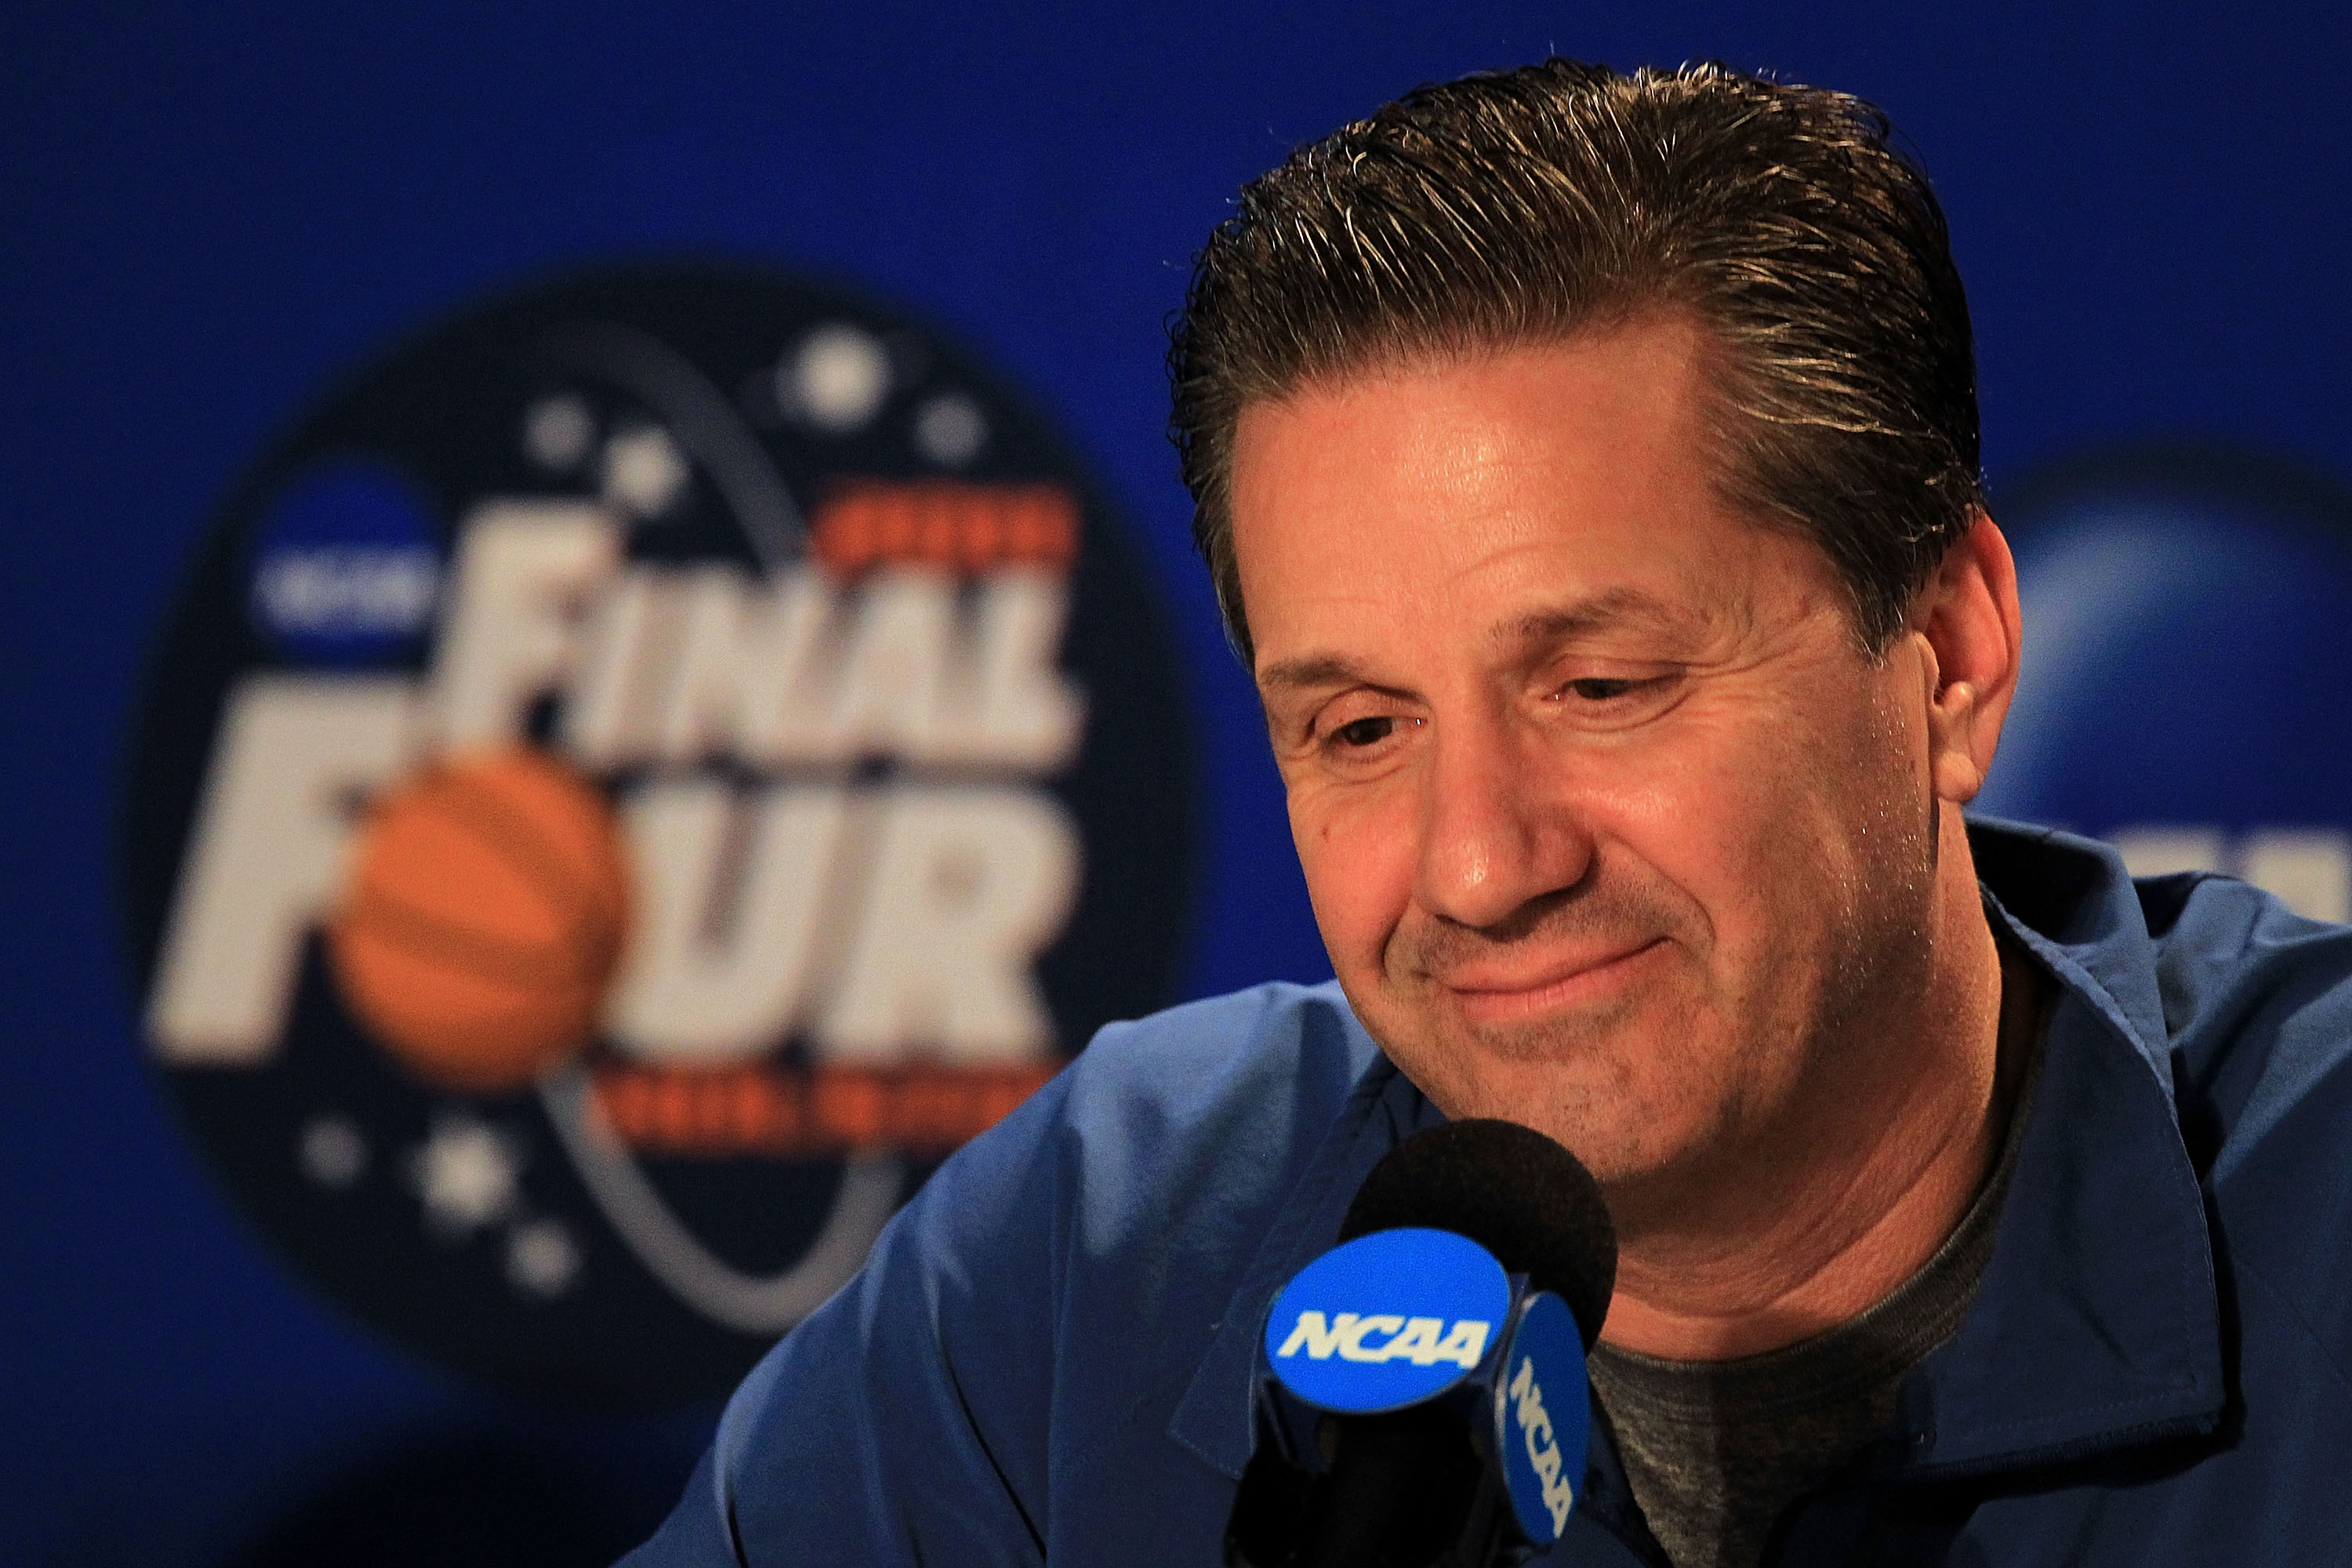 HOUSTON, TX - APRIL 01:  Head coach John Calipari of the Kentucky Wildcats addresses the media after practice prior to the 2011 Final Four of the NCAA Division I Men's Basketball Tournament at Reliant Stadium on April 1, 2011 in Houston, Texas.  (Photo by